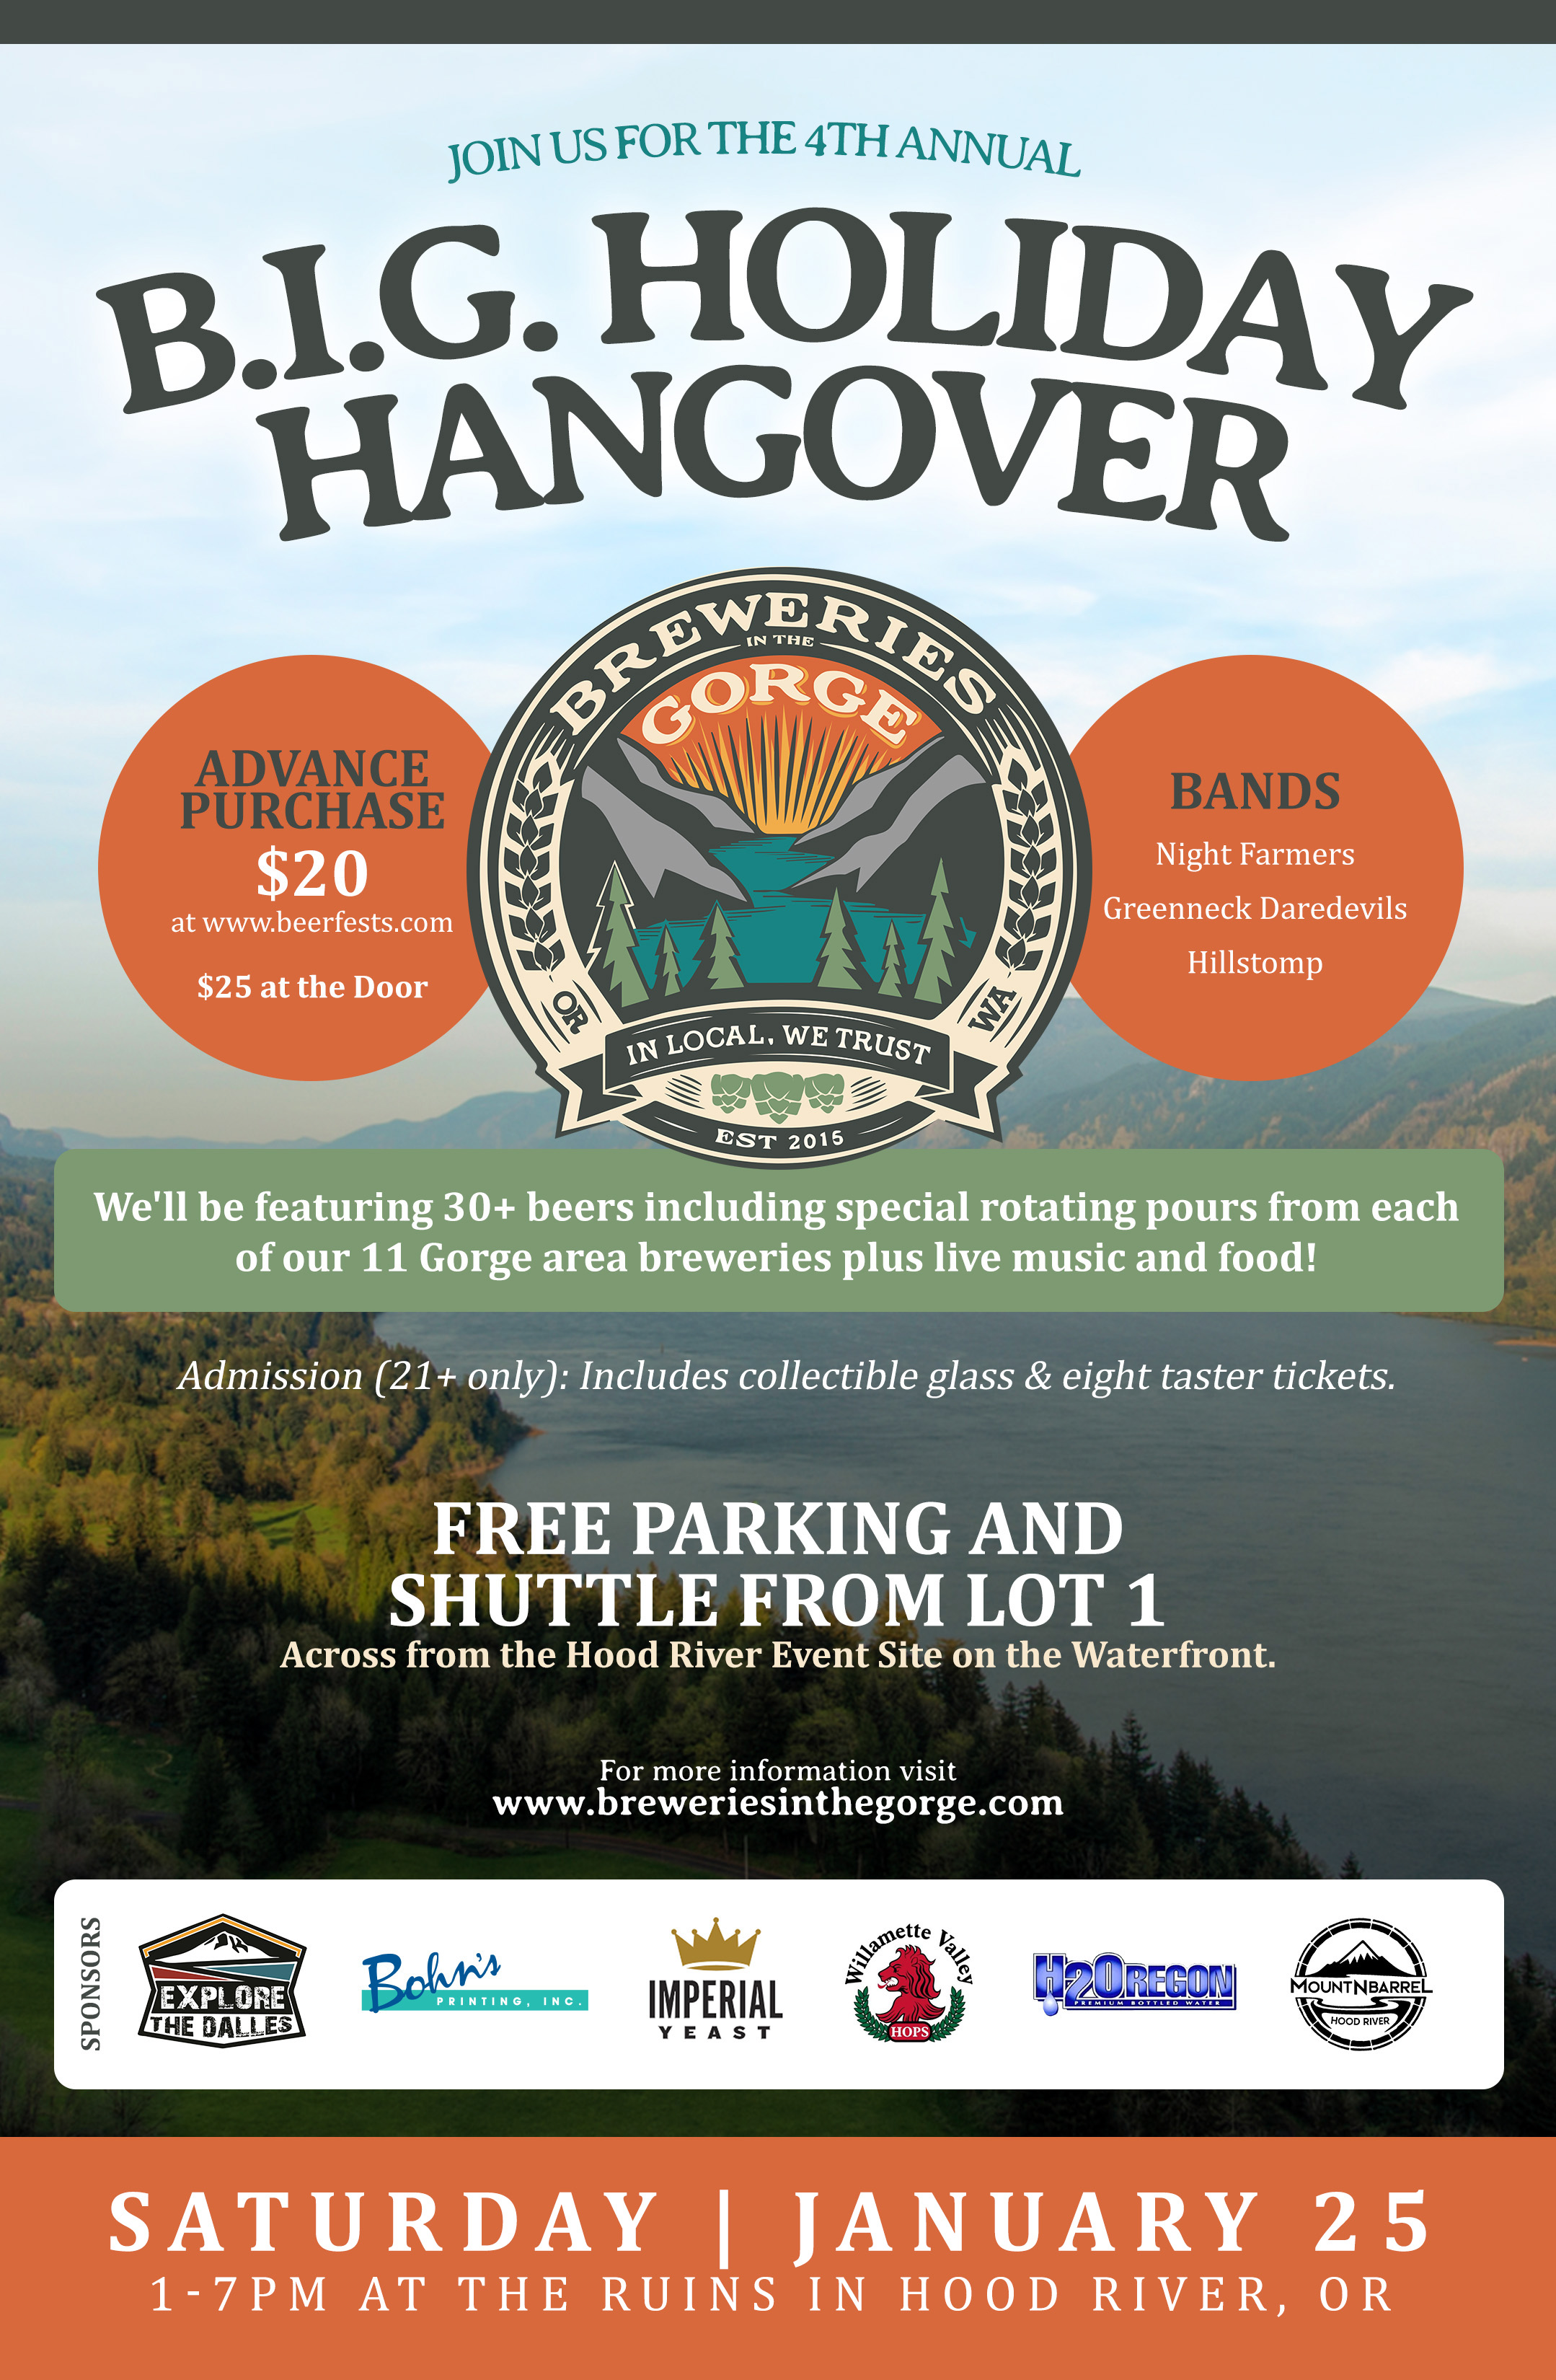 Breweries in the Gorge B.I.G. Holiday Hangover 2020 Poster